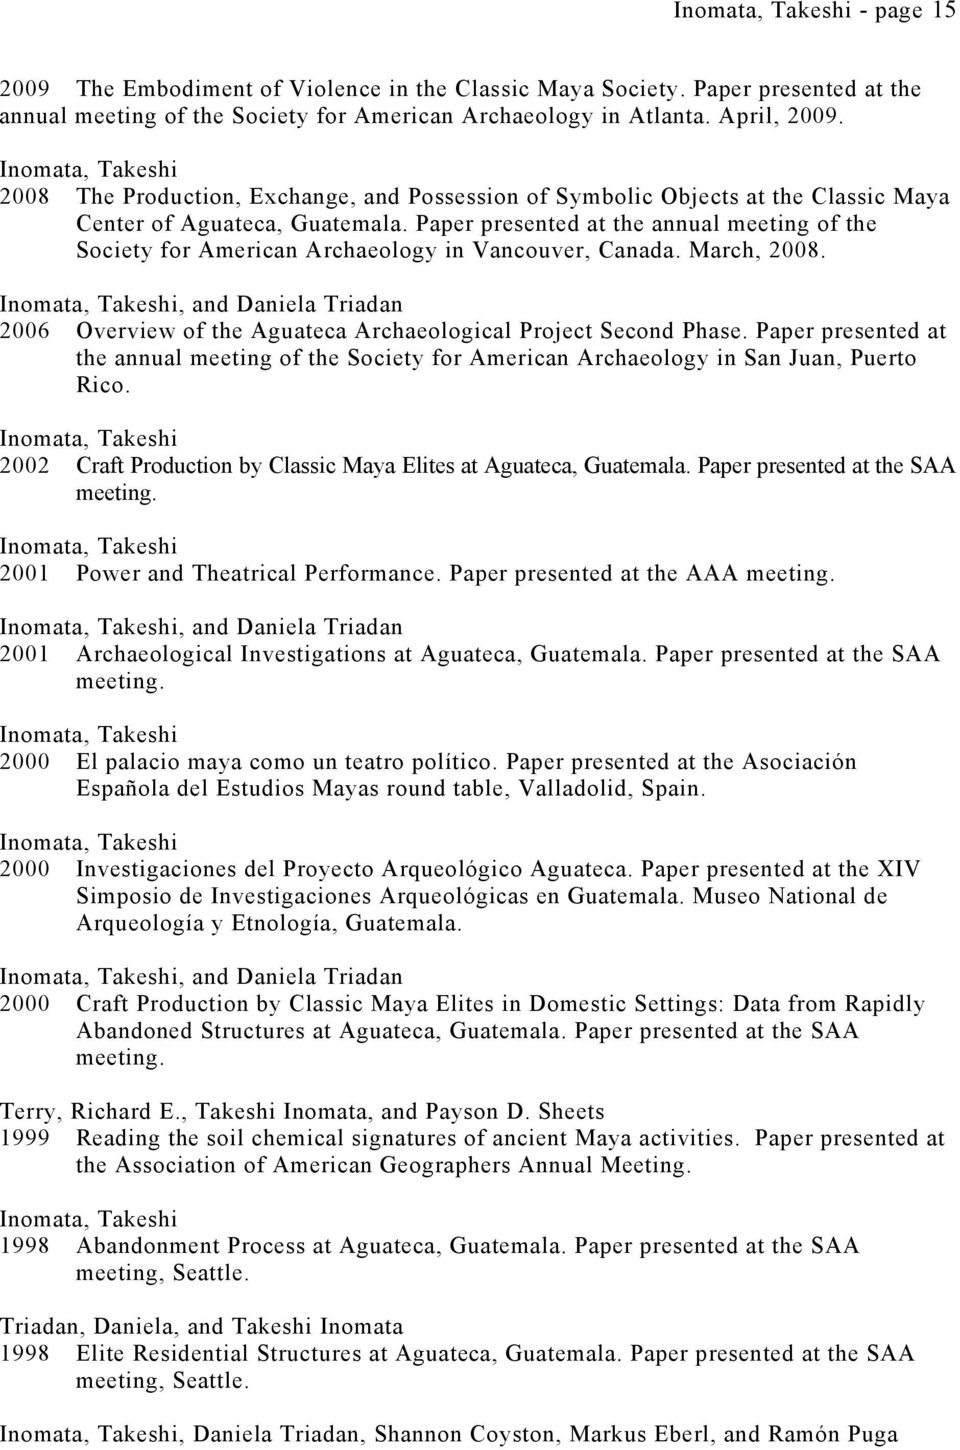 Paper presented at the annual meeting of the Society for American Archaeology in Vancouver, Canada. March, 2008., and Daniela Triadan 2006 Overview of the Aguateca Archaeological Project Second Phase.